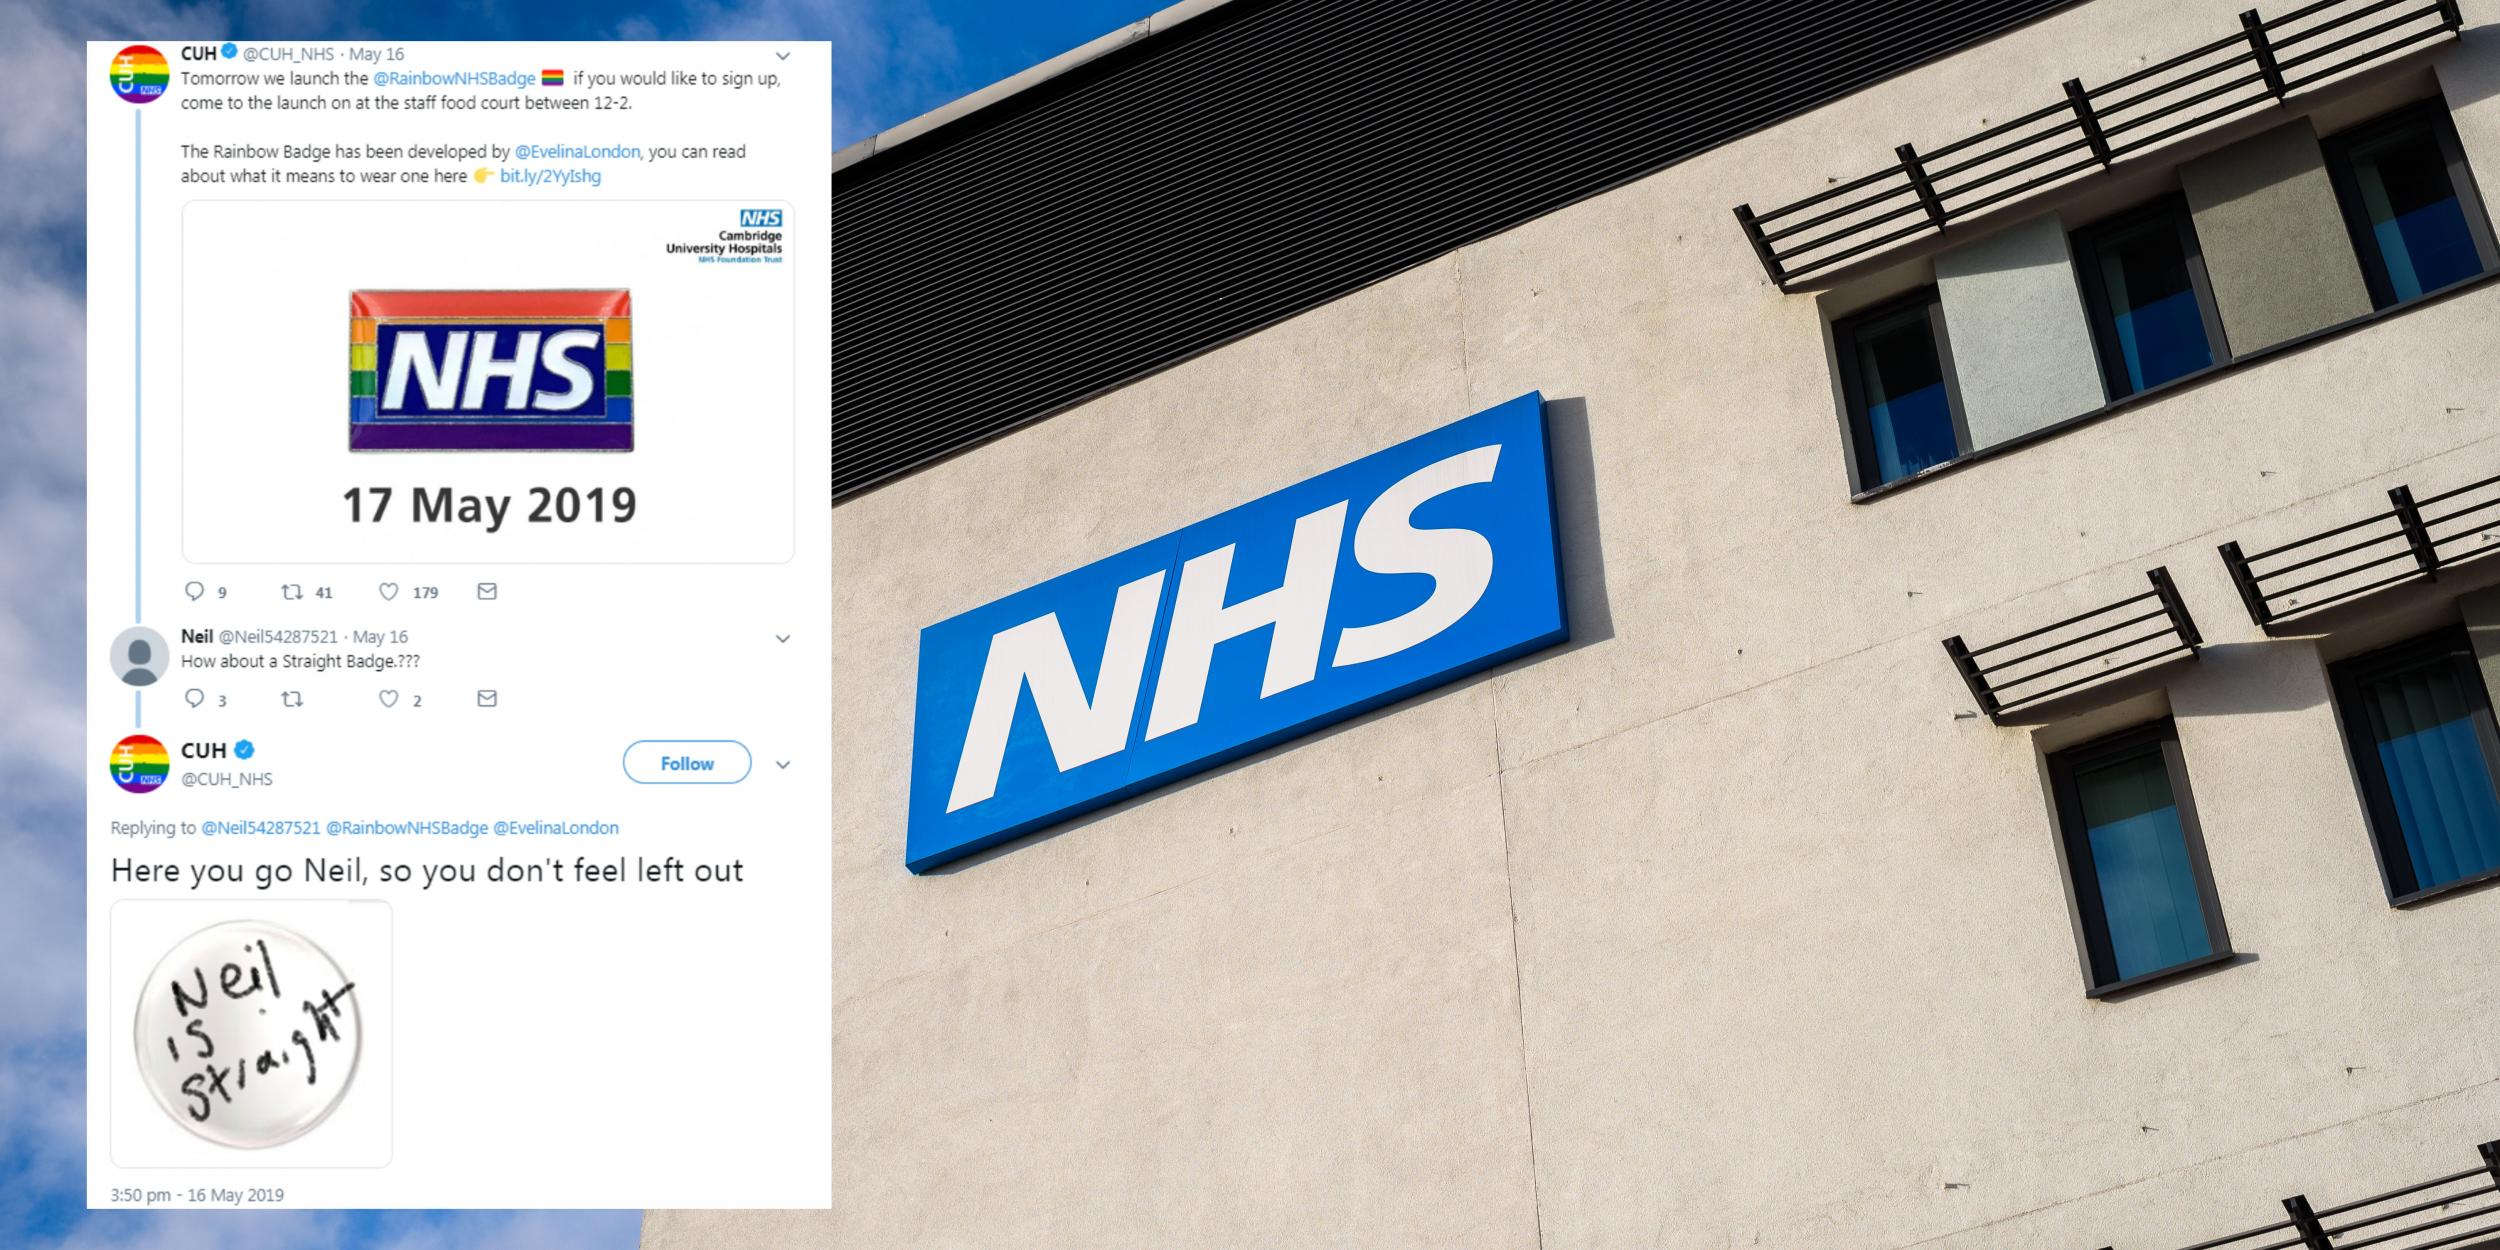 Hospital has brutal response to man complaining about LGBT NHS badge